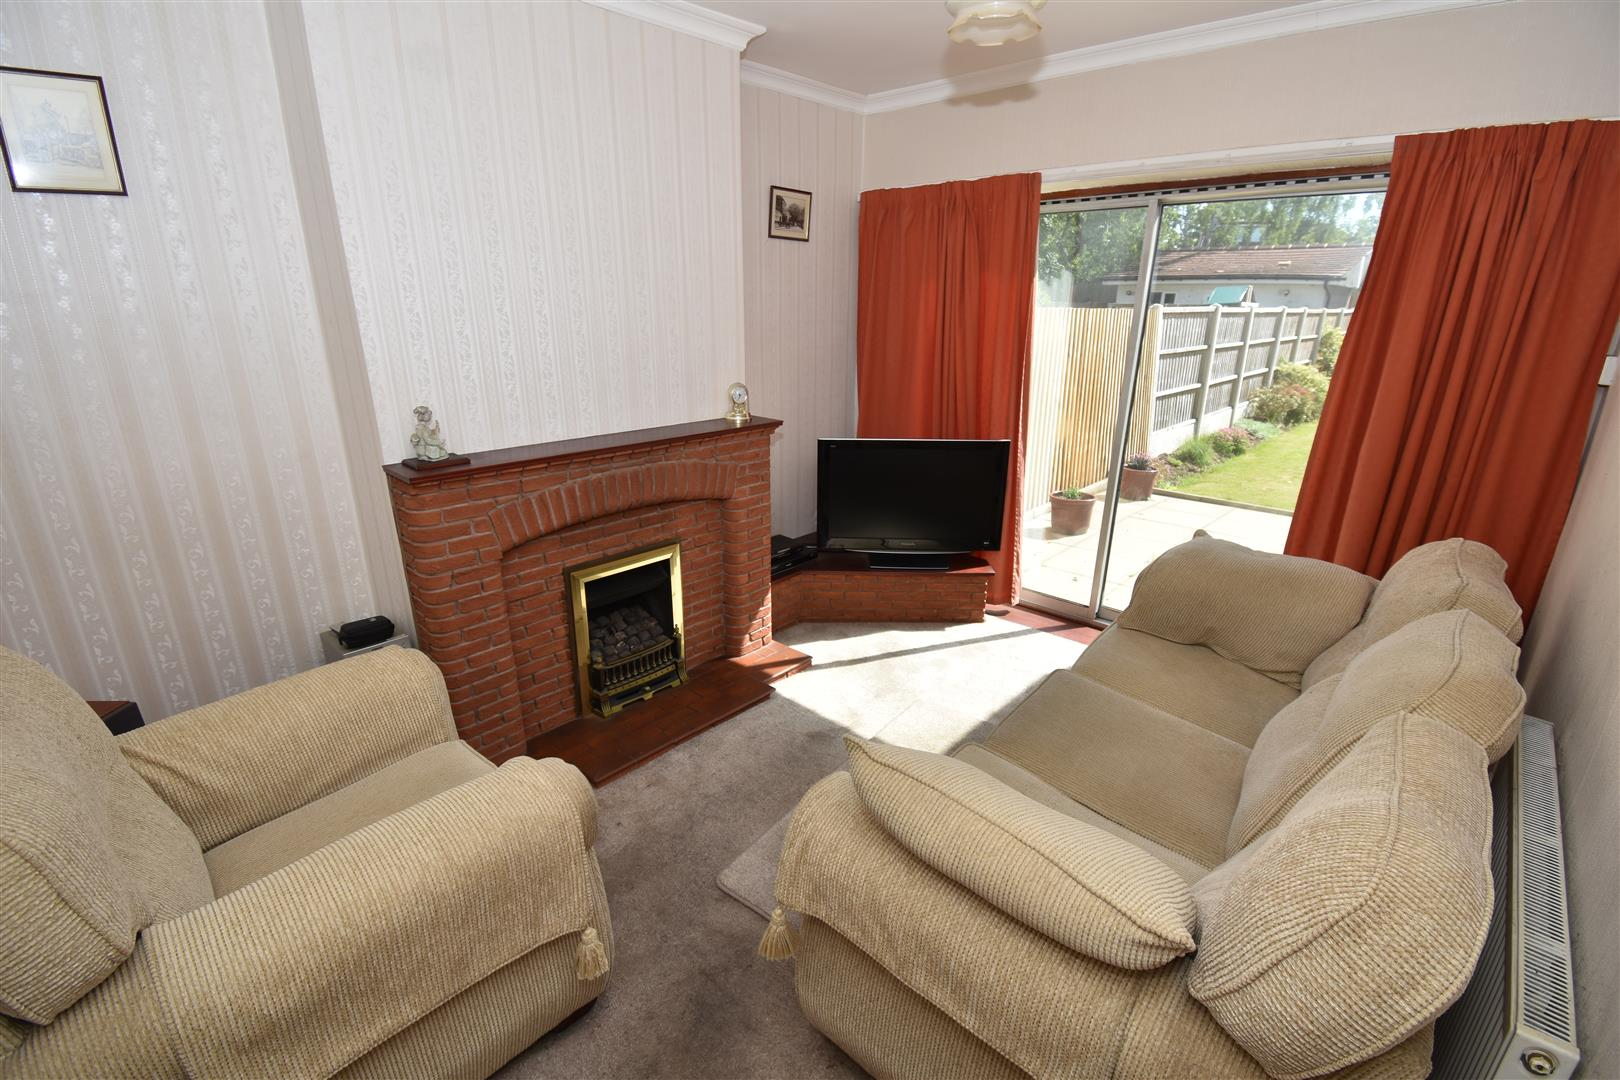 3 bed house for sale in Mickleover Road, Ward End, Birmingham 3